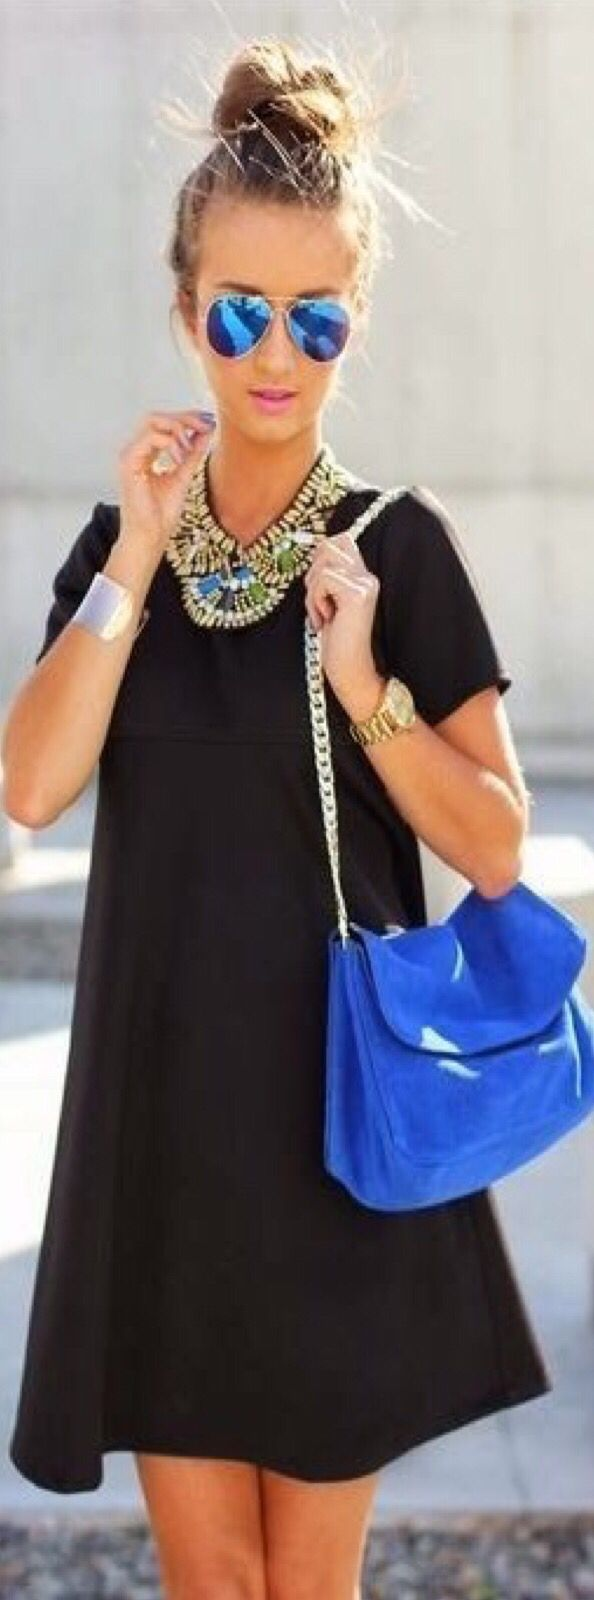 Street Chic. In Blue and black - #Luxurydotcom